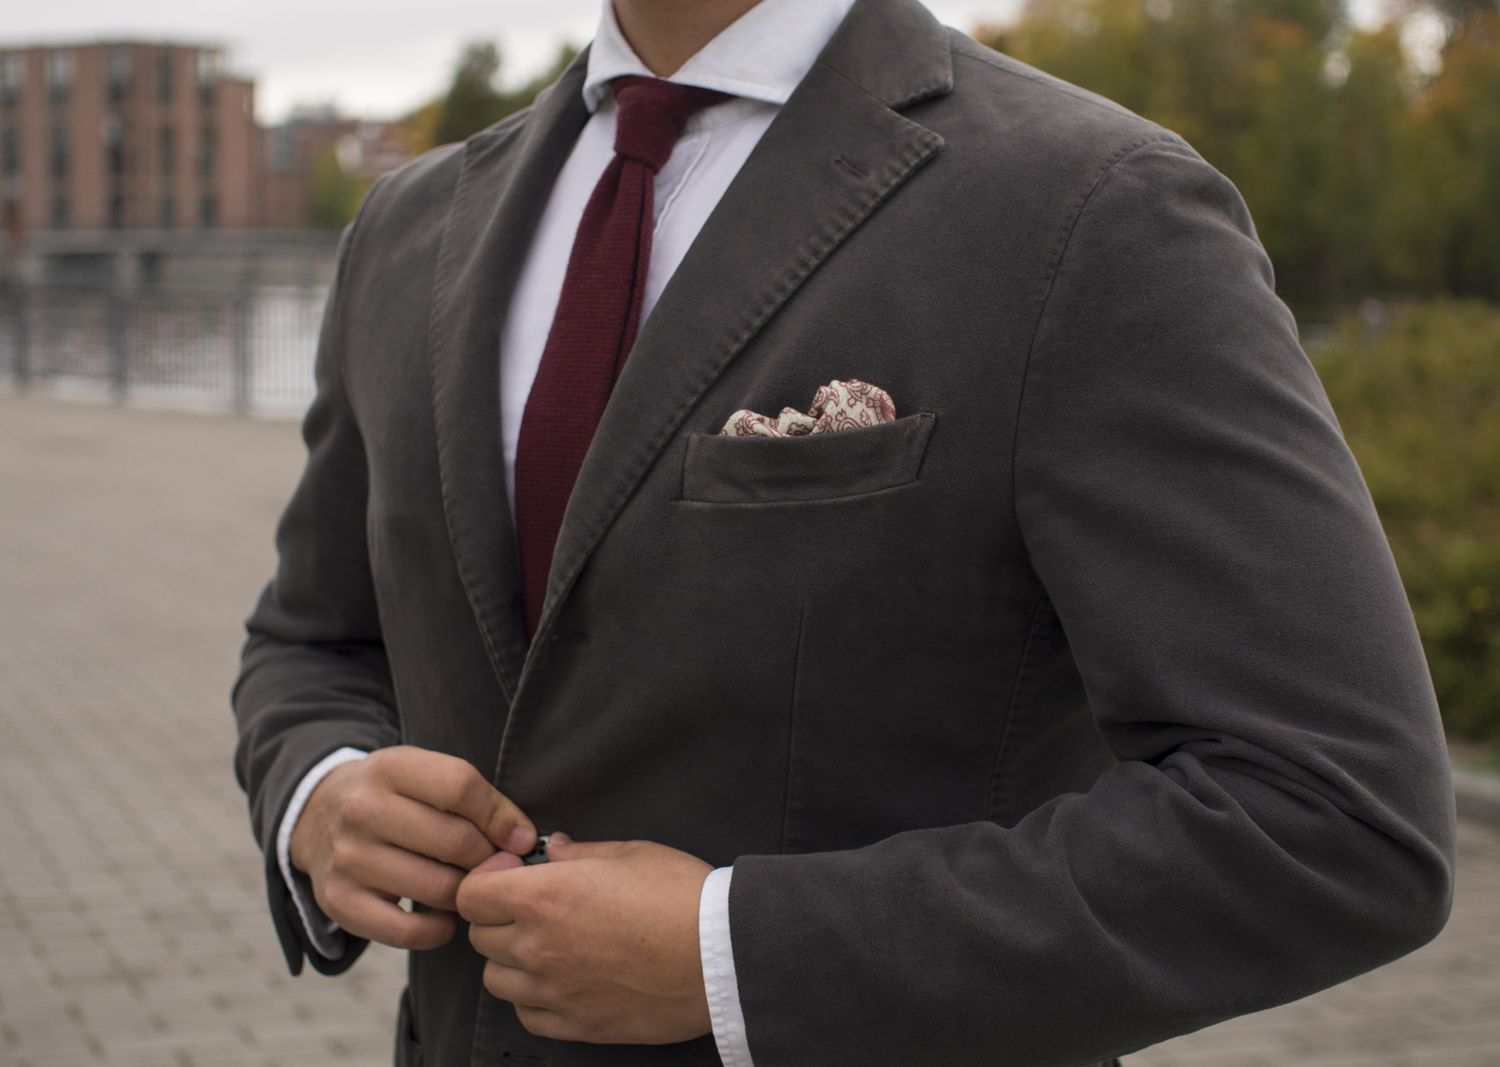 What is moleskin fabric used for